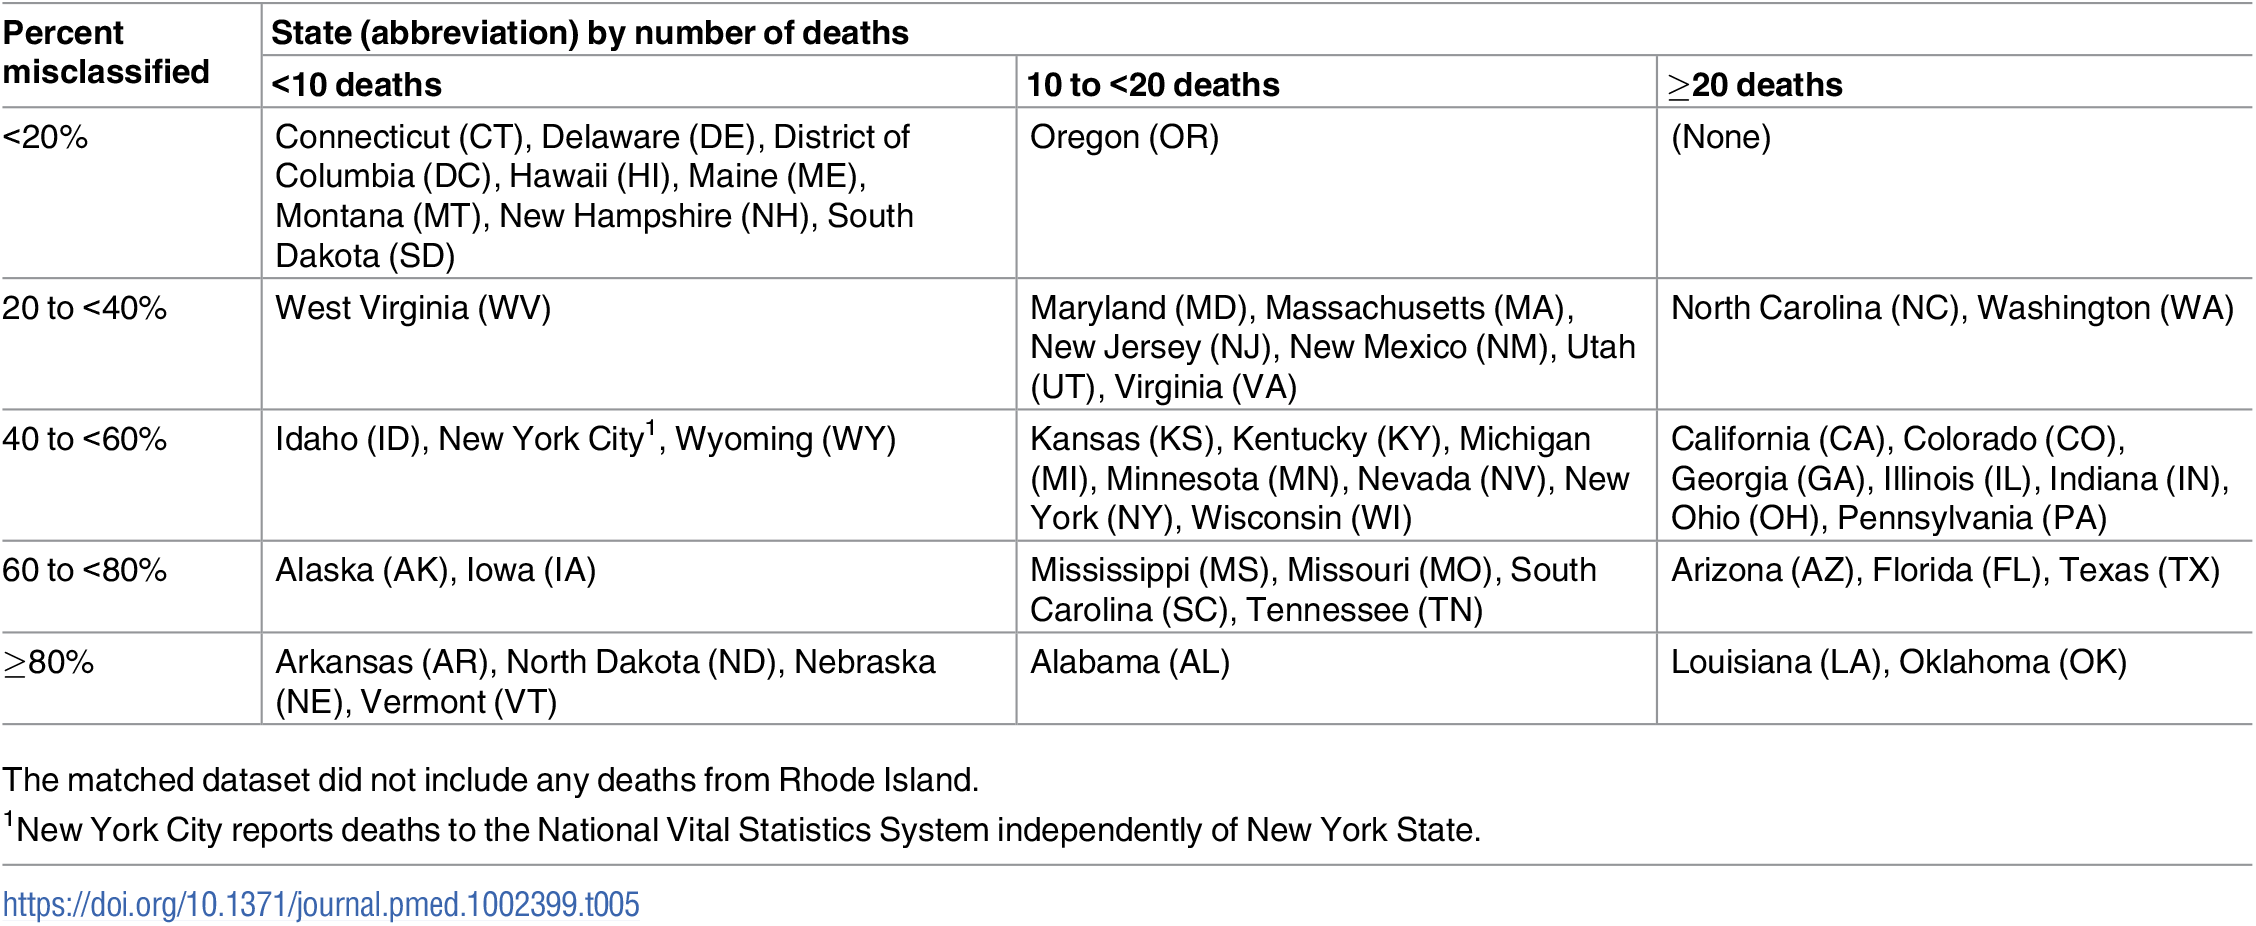 Misclassification rates for law-enforcement-related deaths in National Vital Statistics System mortality data based on cases matched to The Counted, 2015 (N = 991).